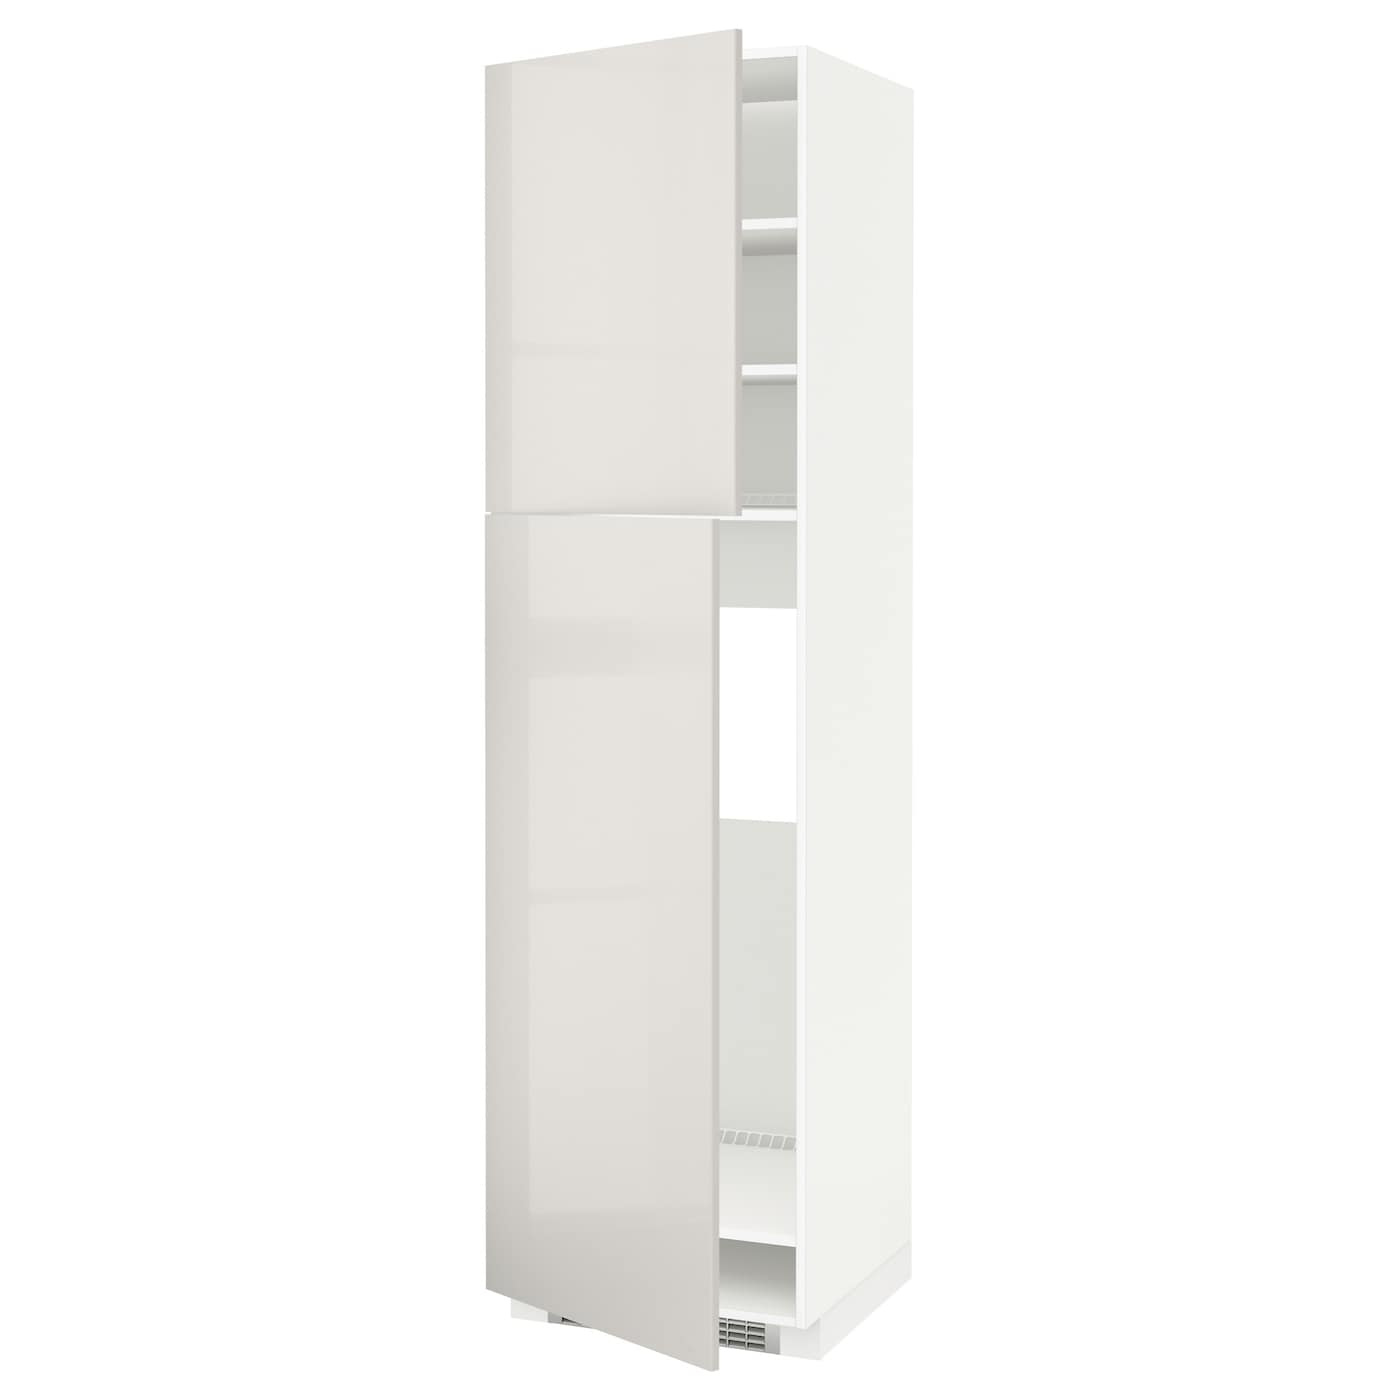 metod high cabinet for fridge w 2 doors white ringhult light grey 60 x 60 x 220 cm ikea. Black Bedroom Furniture Sets. Home Design Ideas